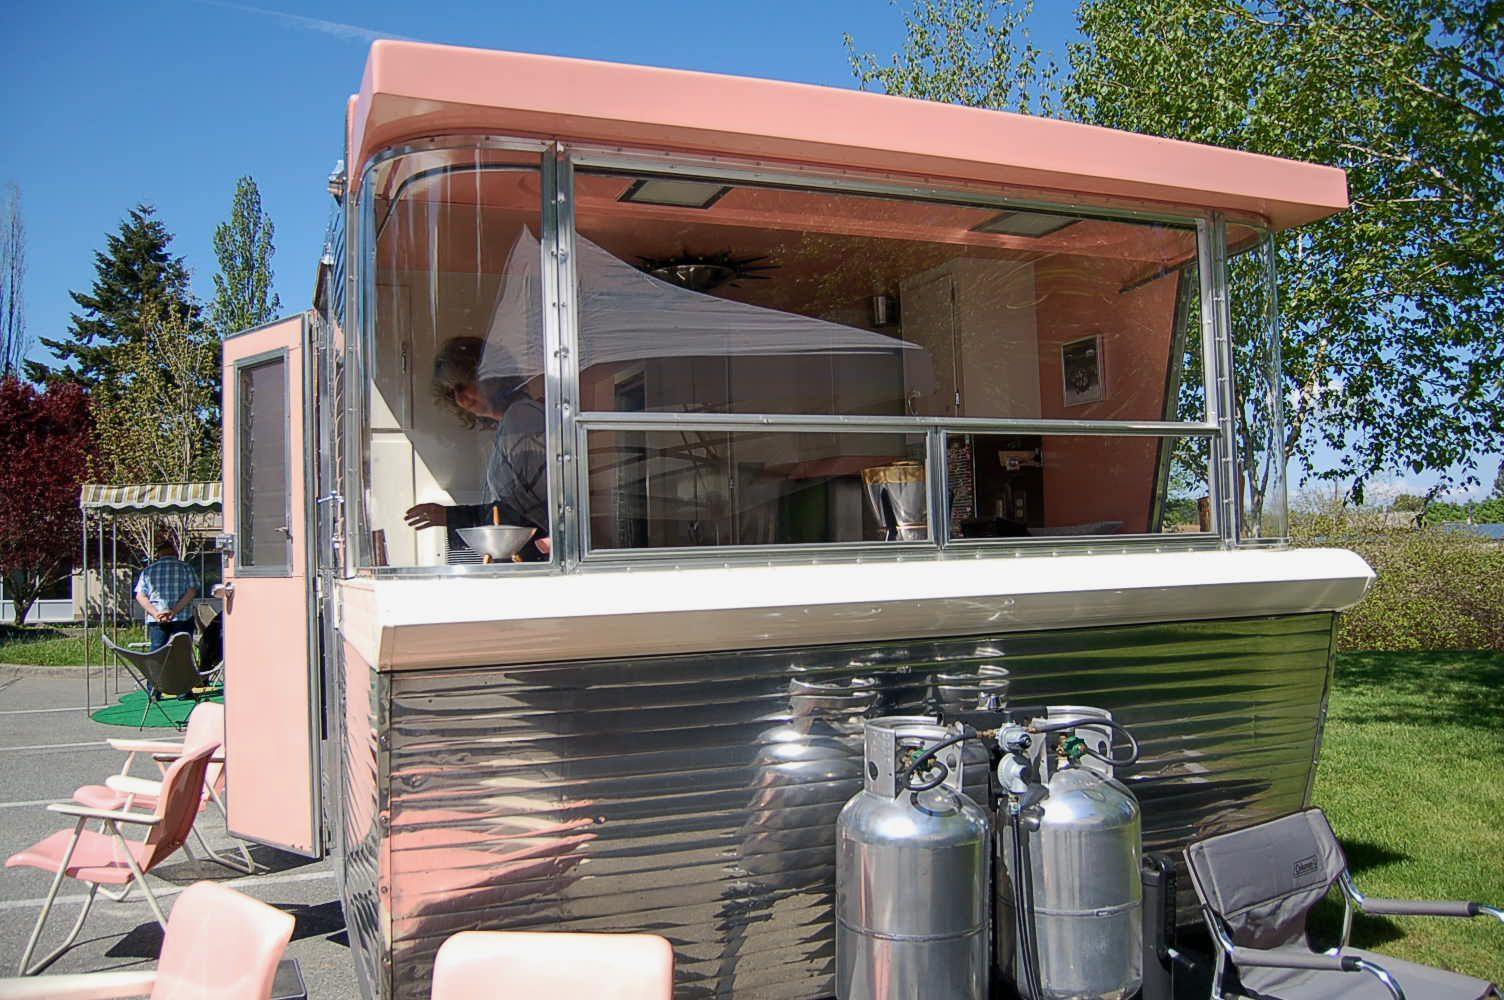 Cheap Travel Trailers For Sale >> Futuristic design on front end of vintage 1961 Holiday House travel trailer   Cheap tiny house ...